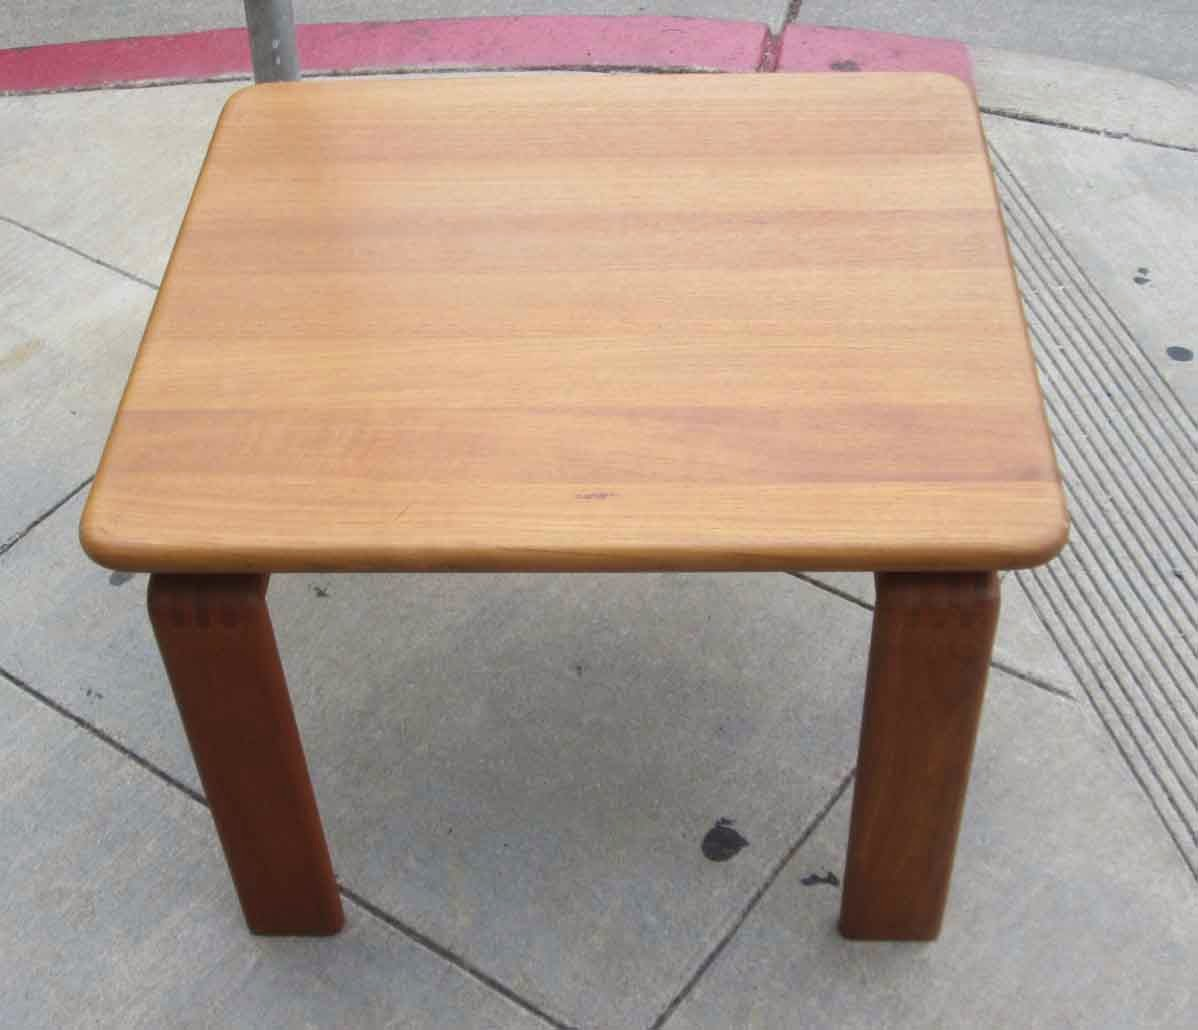 Uhuru furniture collectibles sold solid teak coffee table 75 Solid teak coffee table